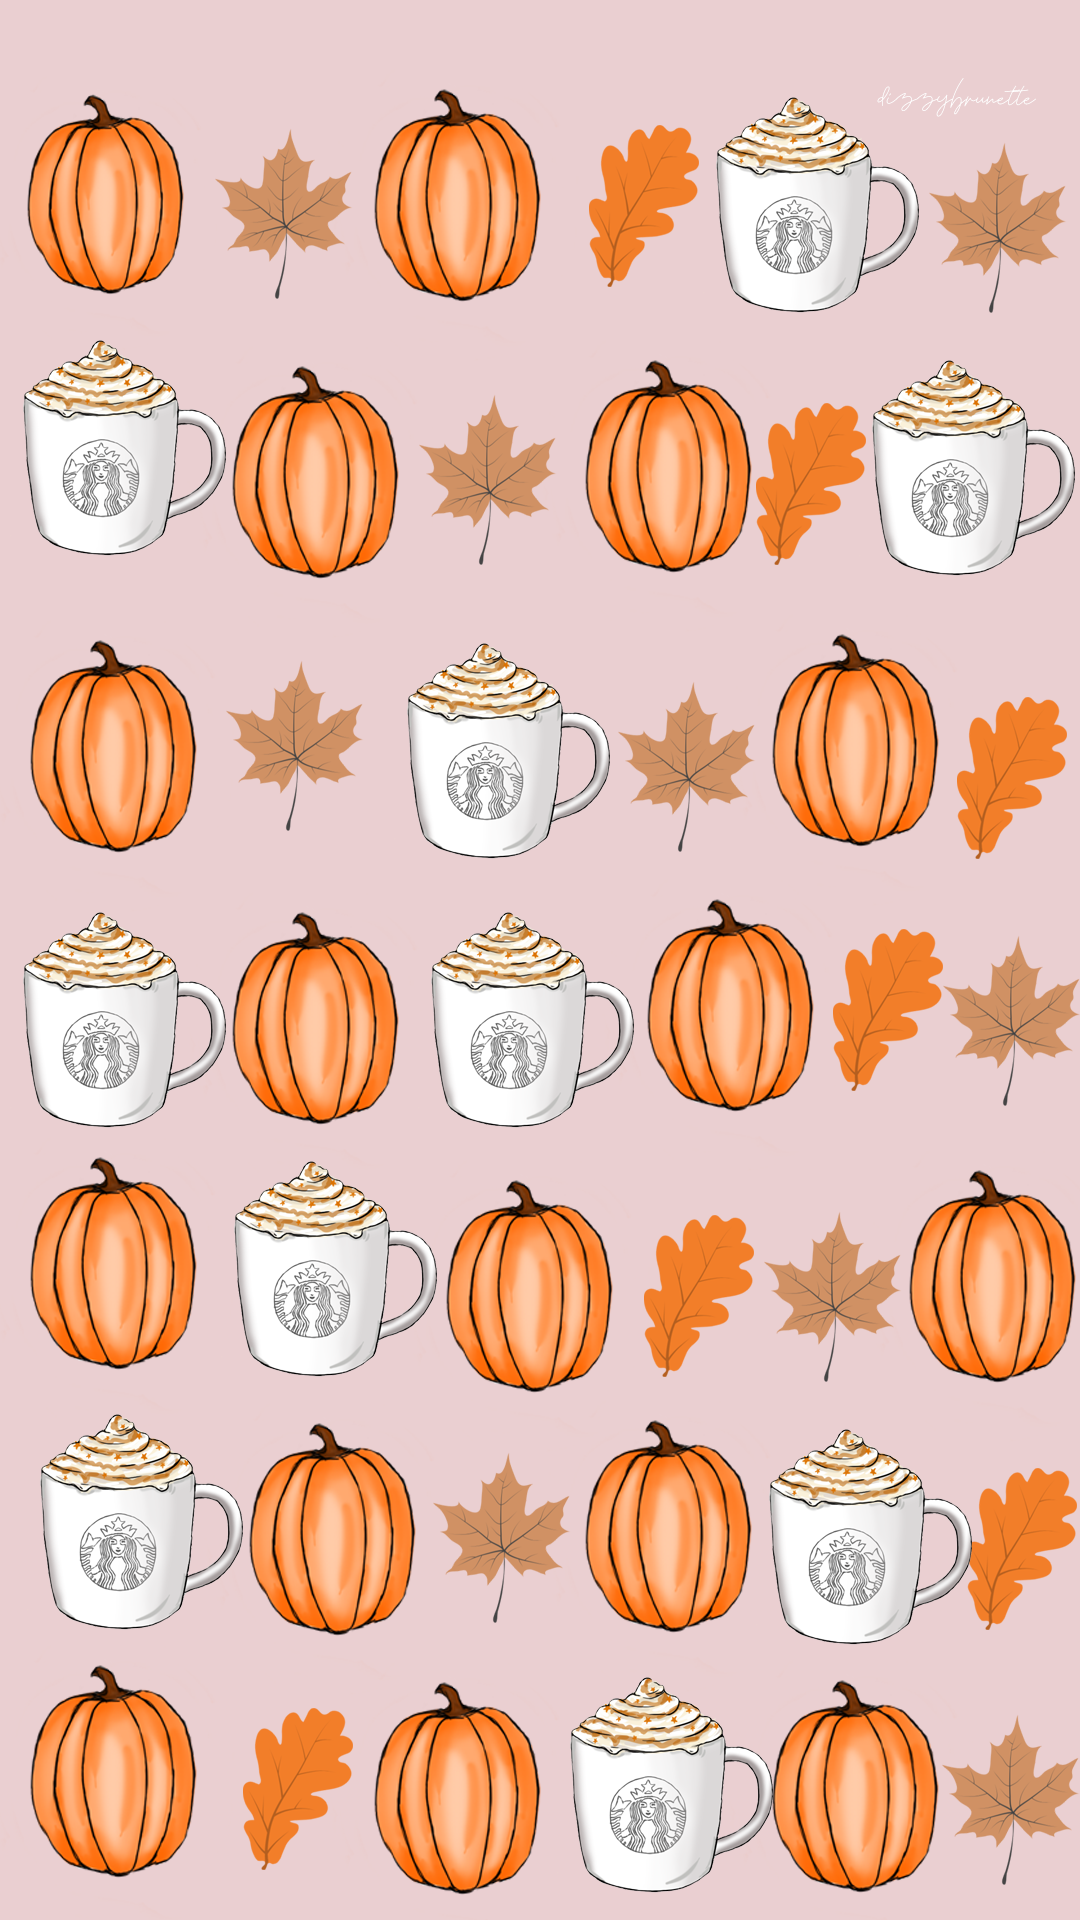 Free Autumn Wallpapers For You To Download Corrie Bromfield Autumn Bromfield Corrie Downl In 2020 Iphone Wallpaper Fall Halloween Wallpaper Iphone Fall Wallpaper